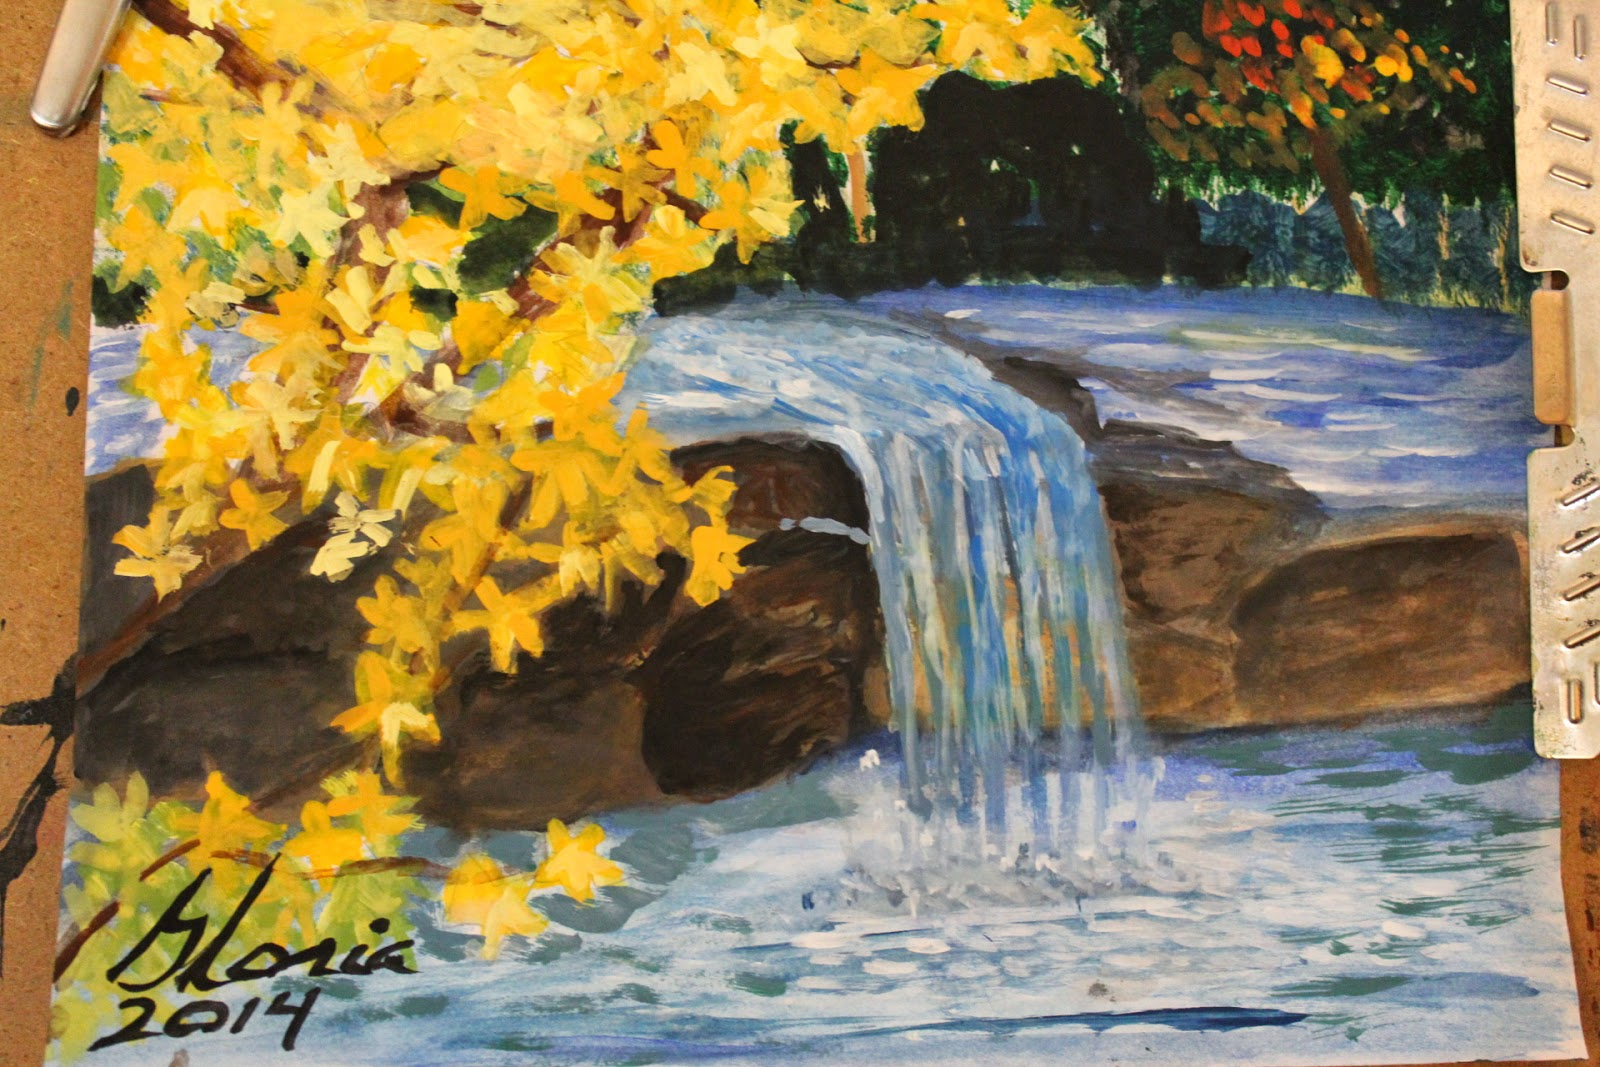 Natural waterfall sketch by Gloria Poole of Missouri and Georgia; 27-April-2014; acrylics